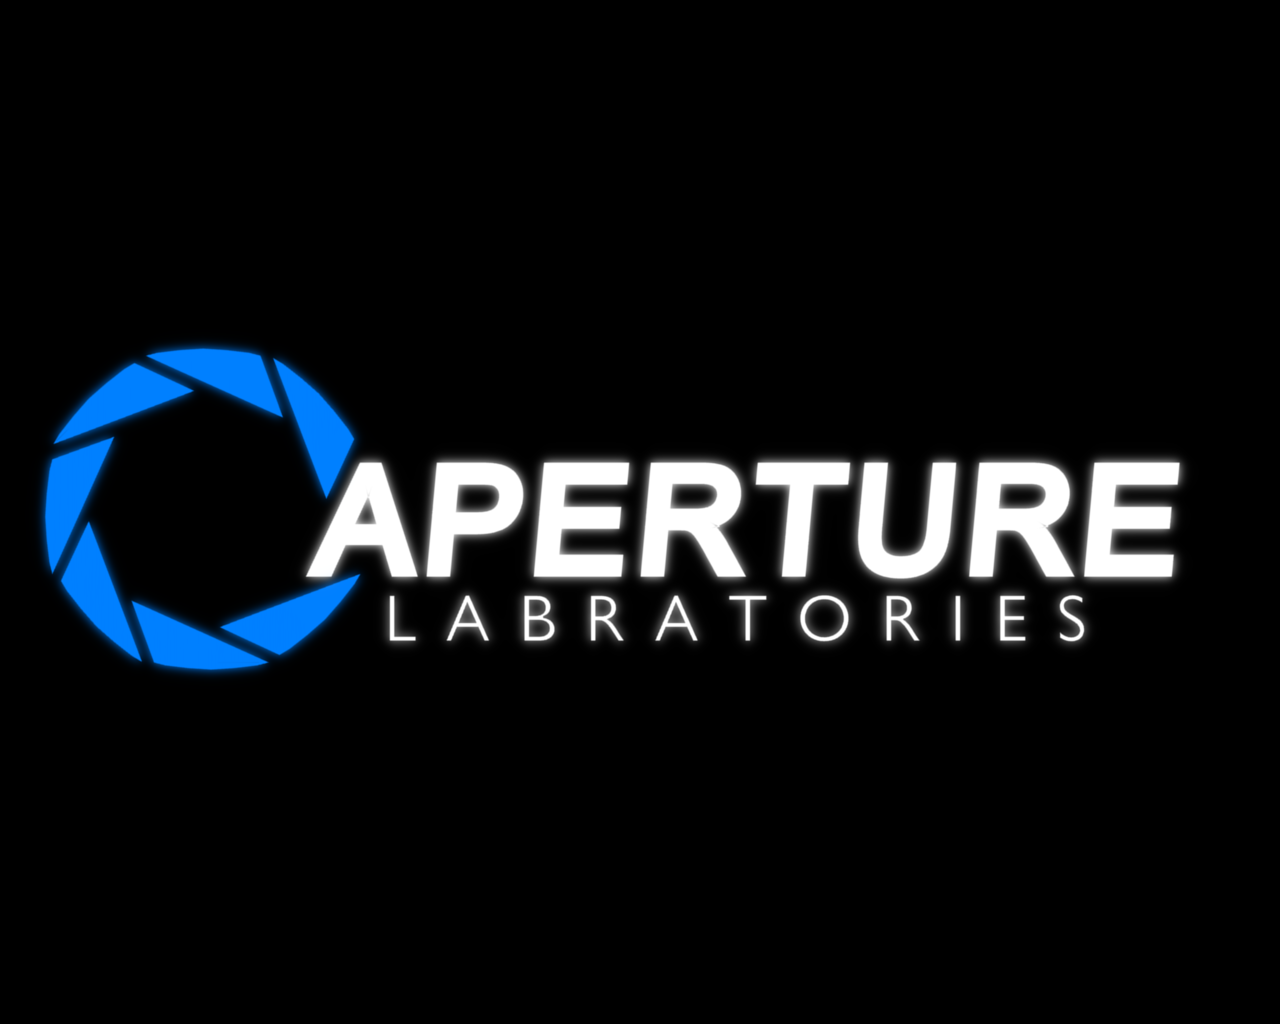 Aperture Science Background - WallpaperSafari